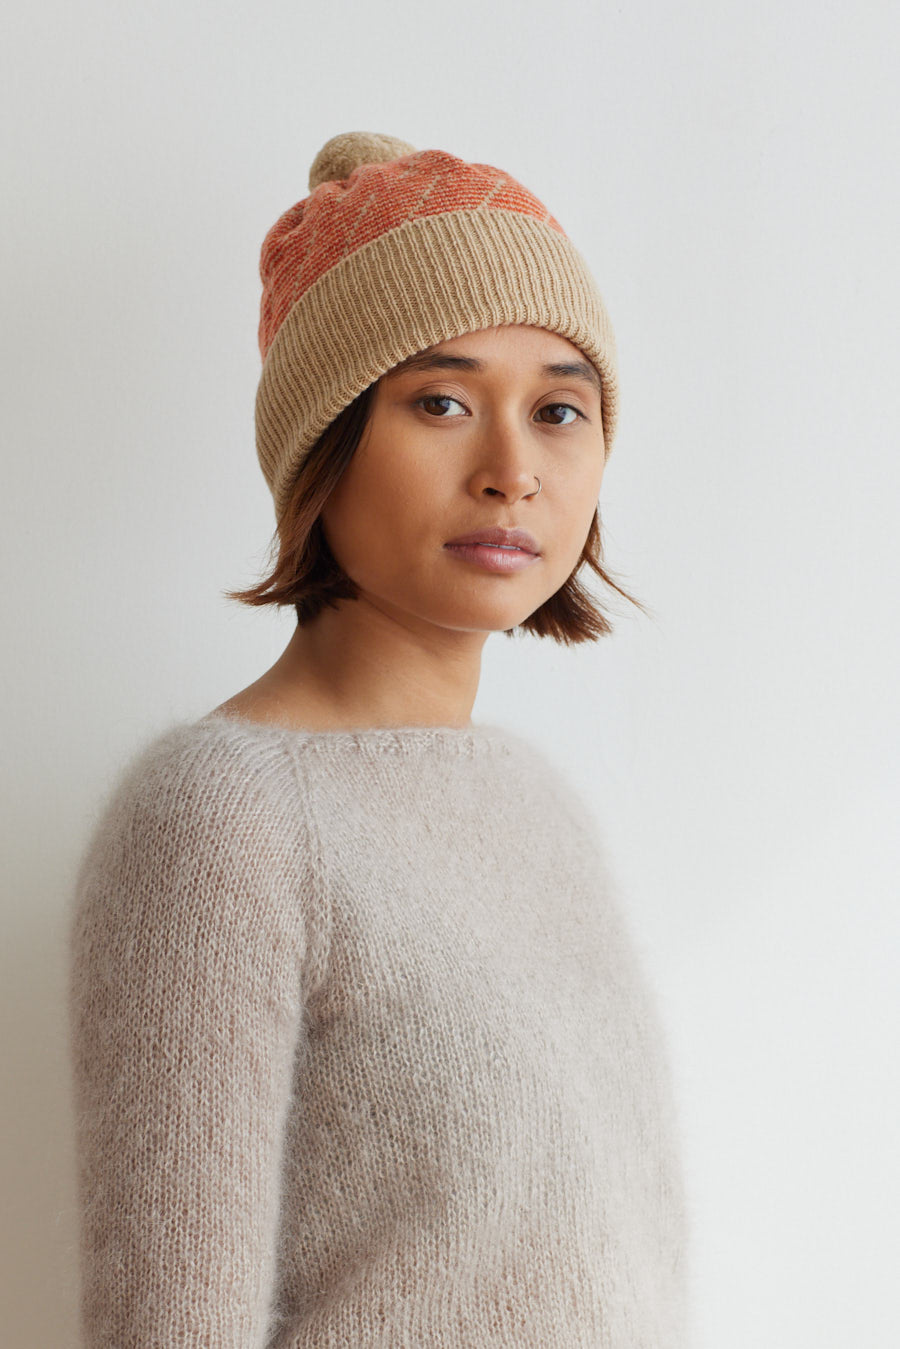 'Forest' Pom Hat in Sandstone and Rust